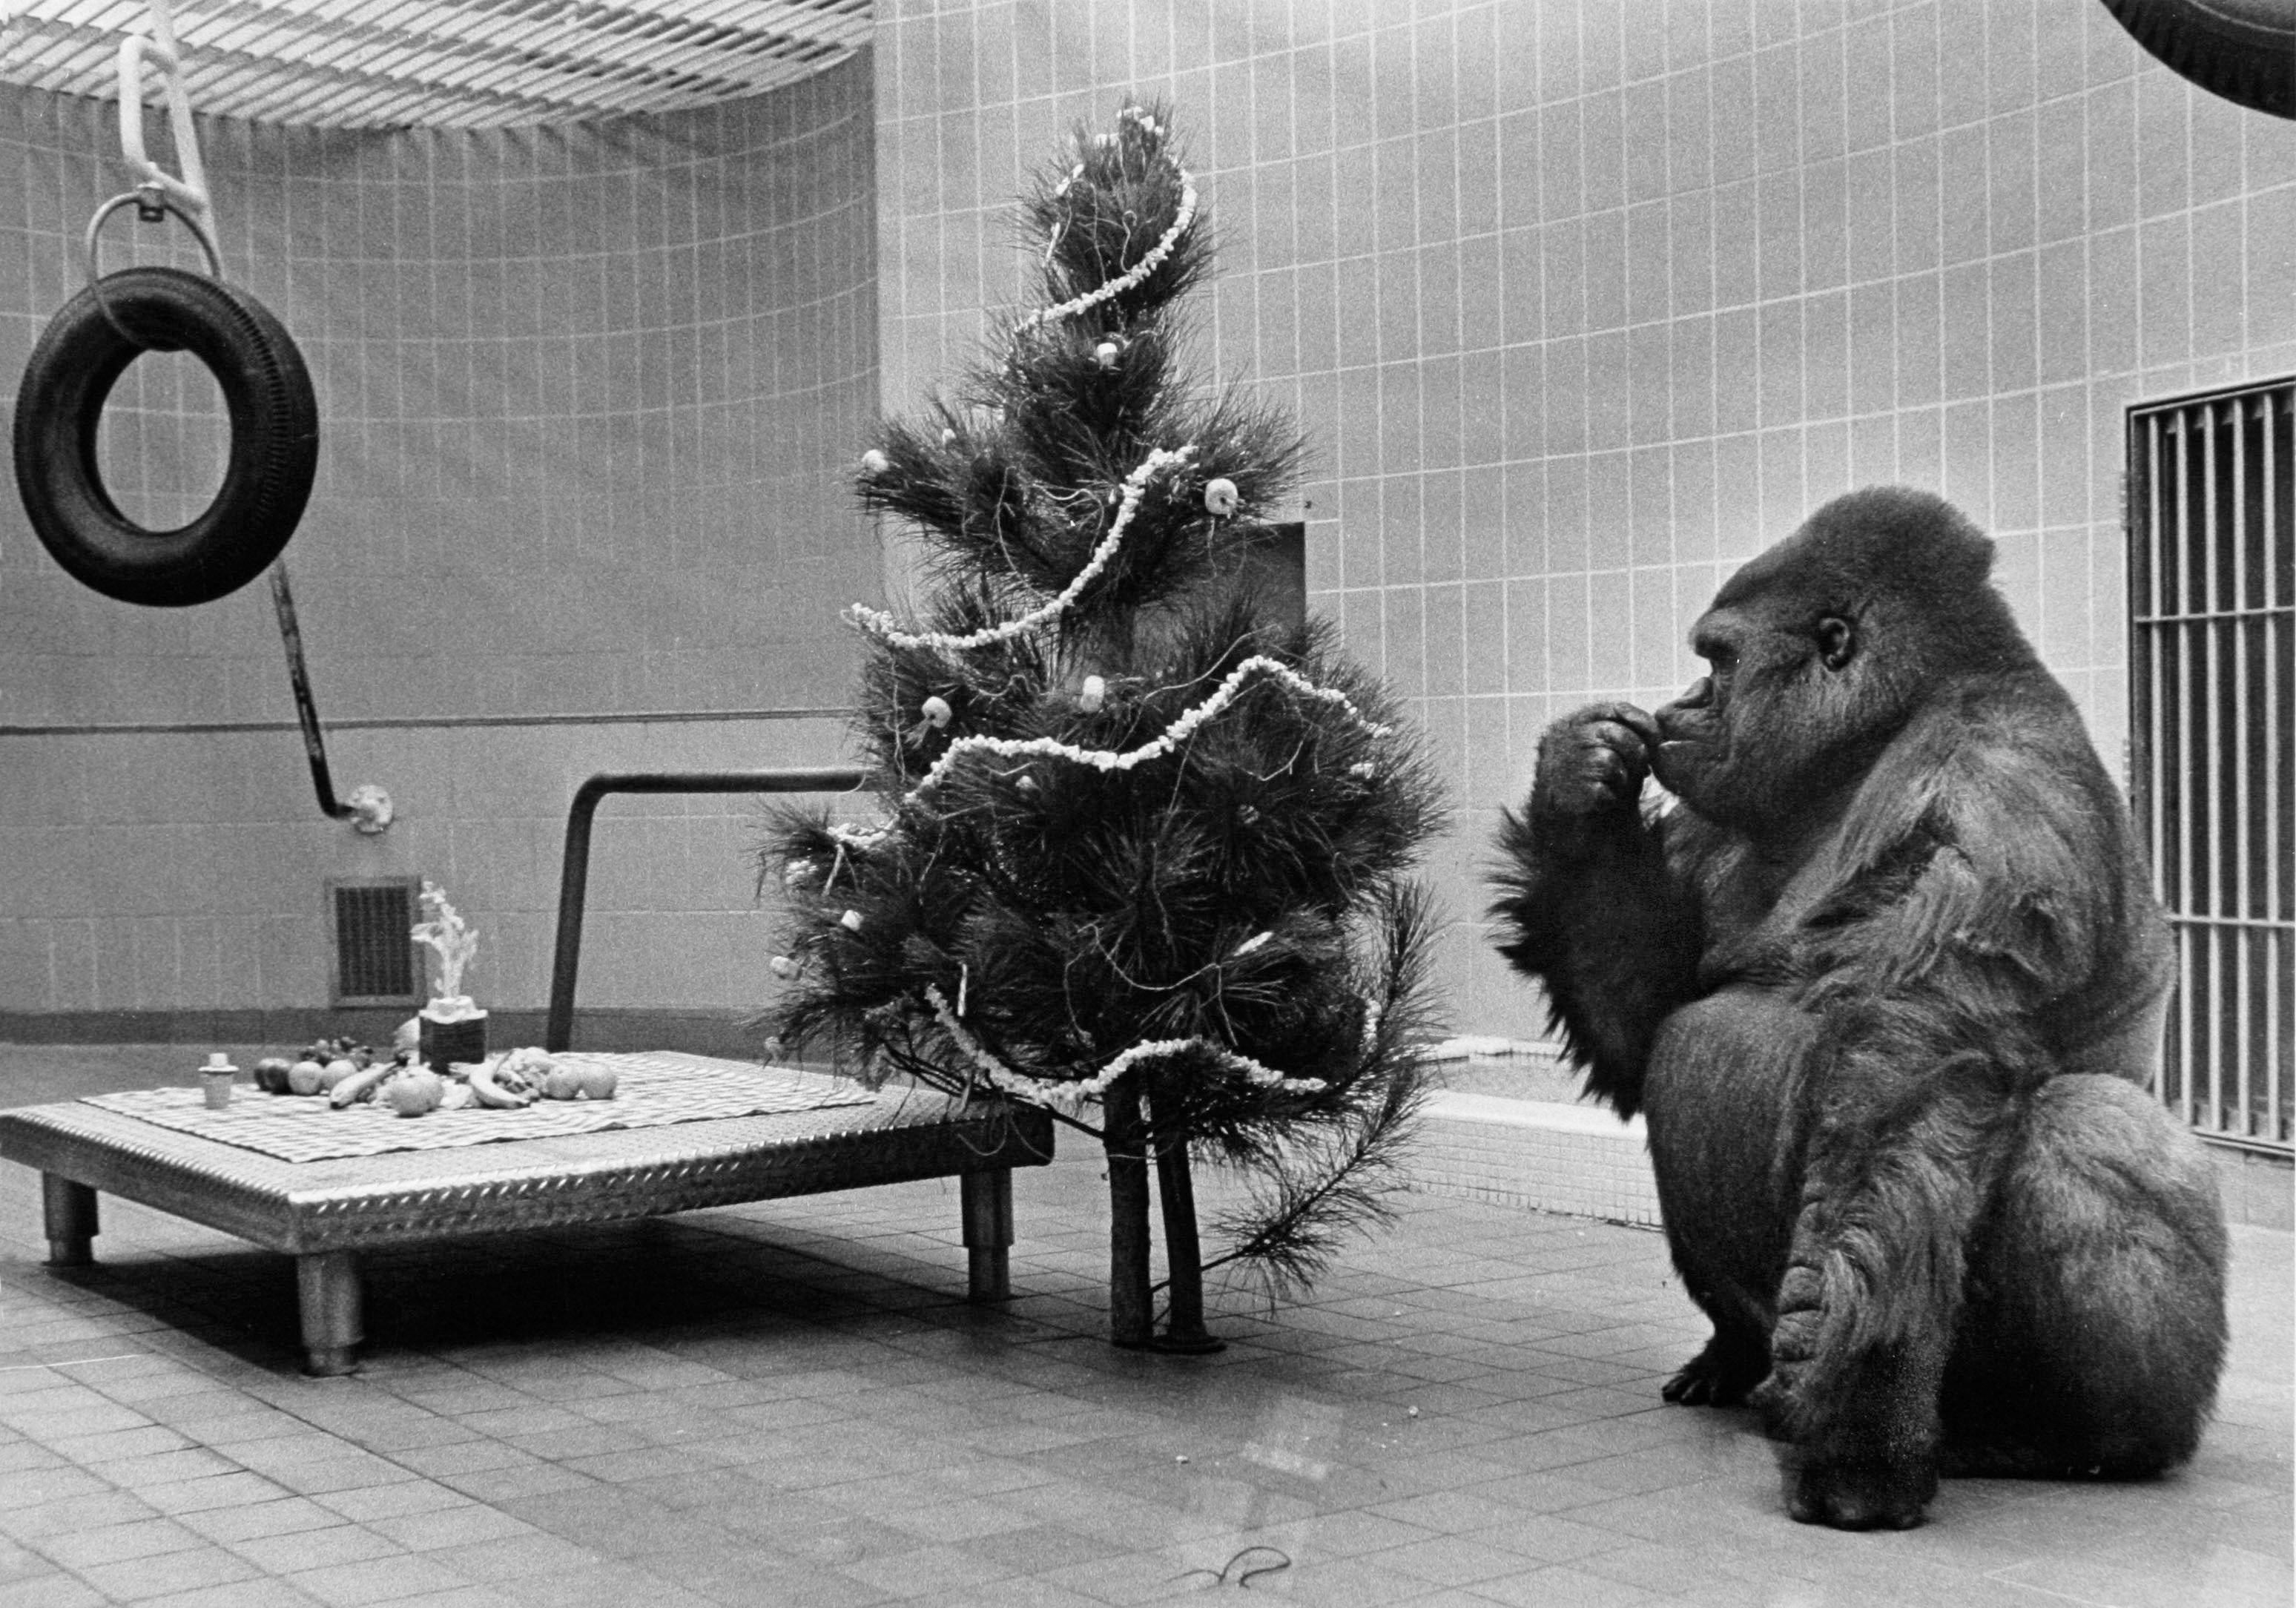 Samson, the Milwaukee County Zoo's popular lowland gorilla, studies the new Christmas tree installed in his quarters as part of the zoo's 1968 Christmas celebration. The tree is decorated with marshmallows, sugar doughnuts, popcorn and candy canes. He ate the treats before heading for the spread on his platform scale. This photo was published in the Dec. 18, 1968, Milwaukee Journal.